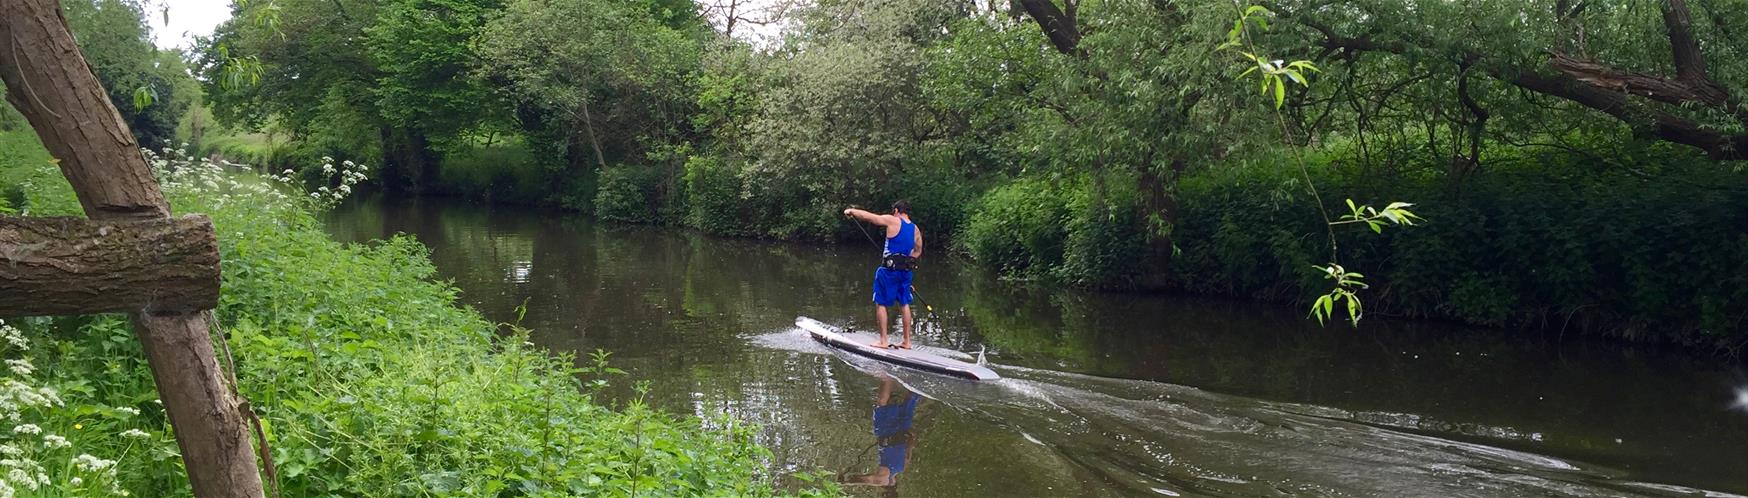 Paddle boarding down the River Wey